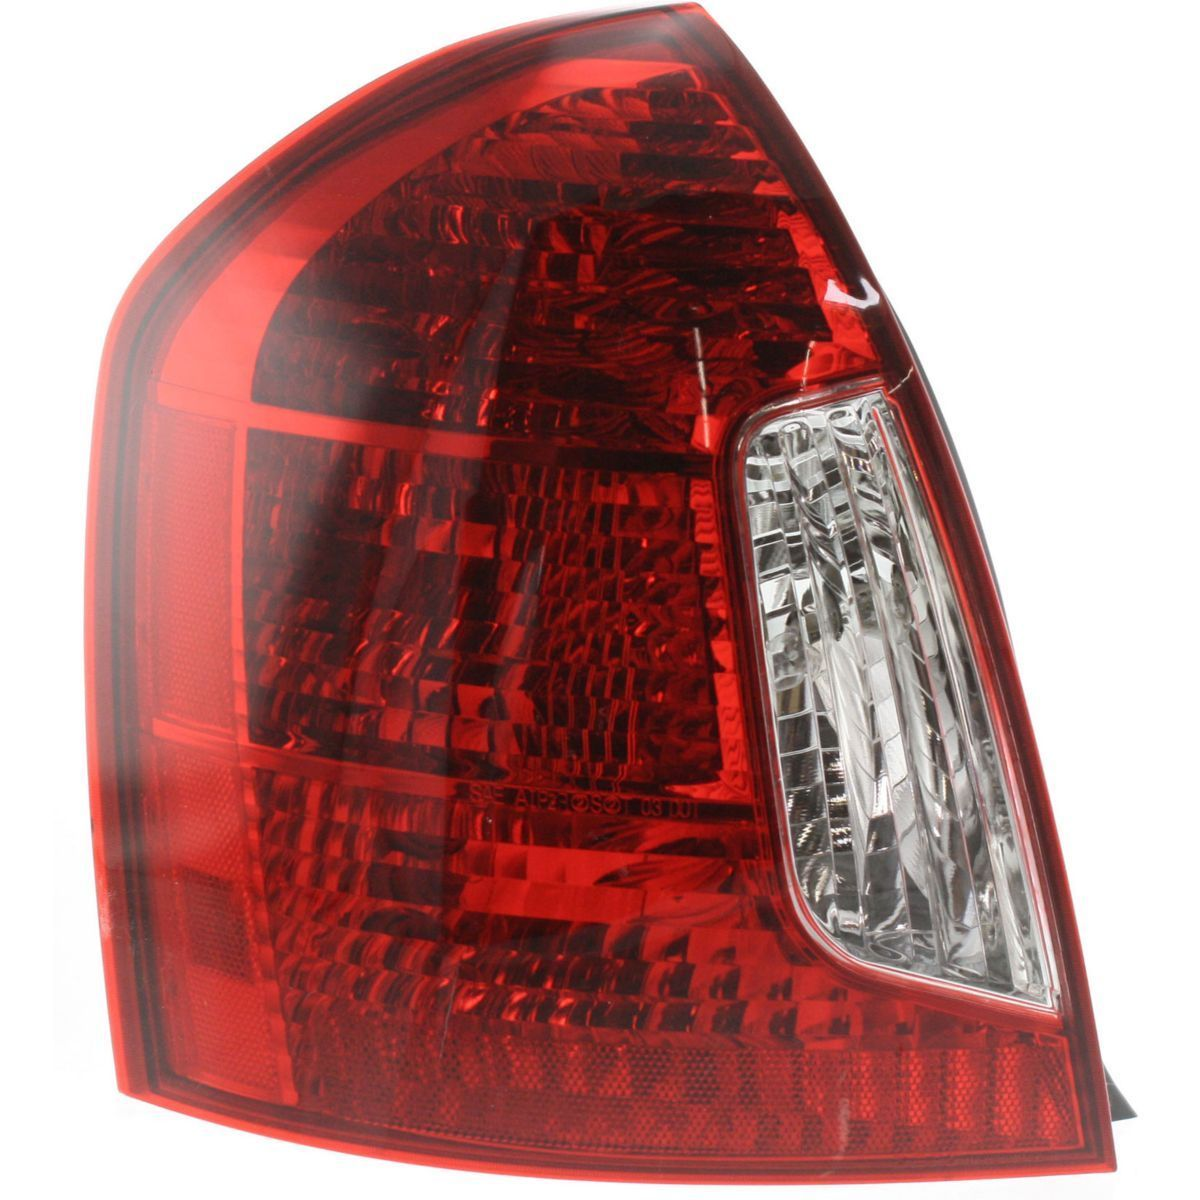 <b> New Tail Light Assembly Driver Side Fits Hyundai Accent Sedan HY2800136 924011E010 <b>